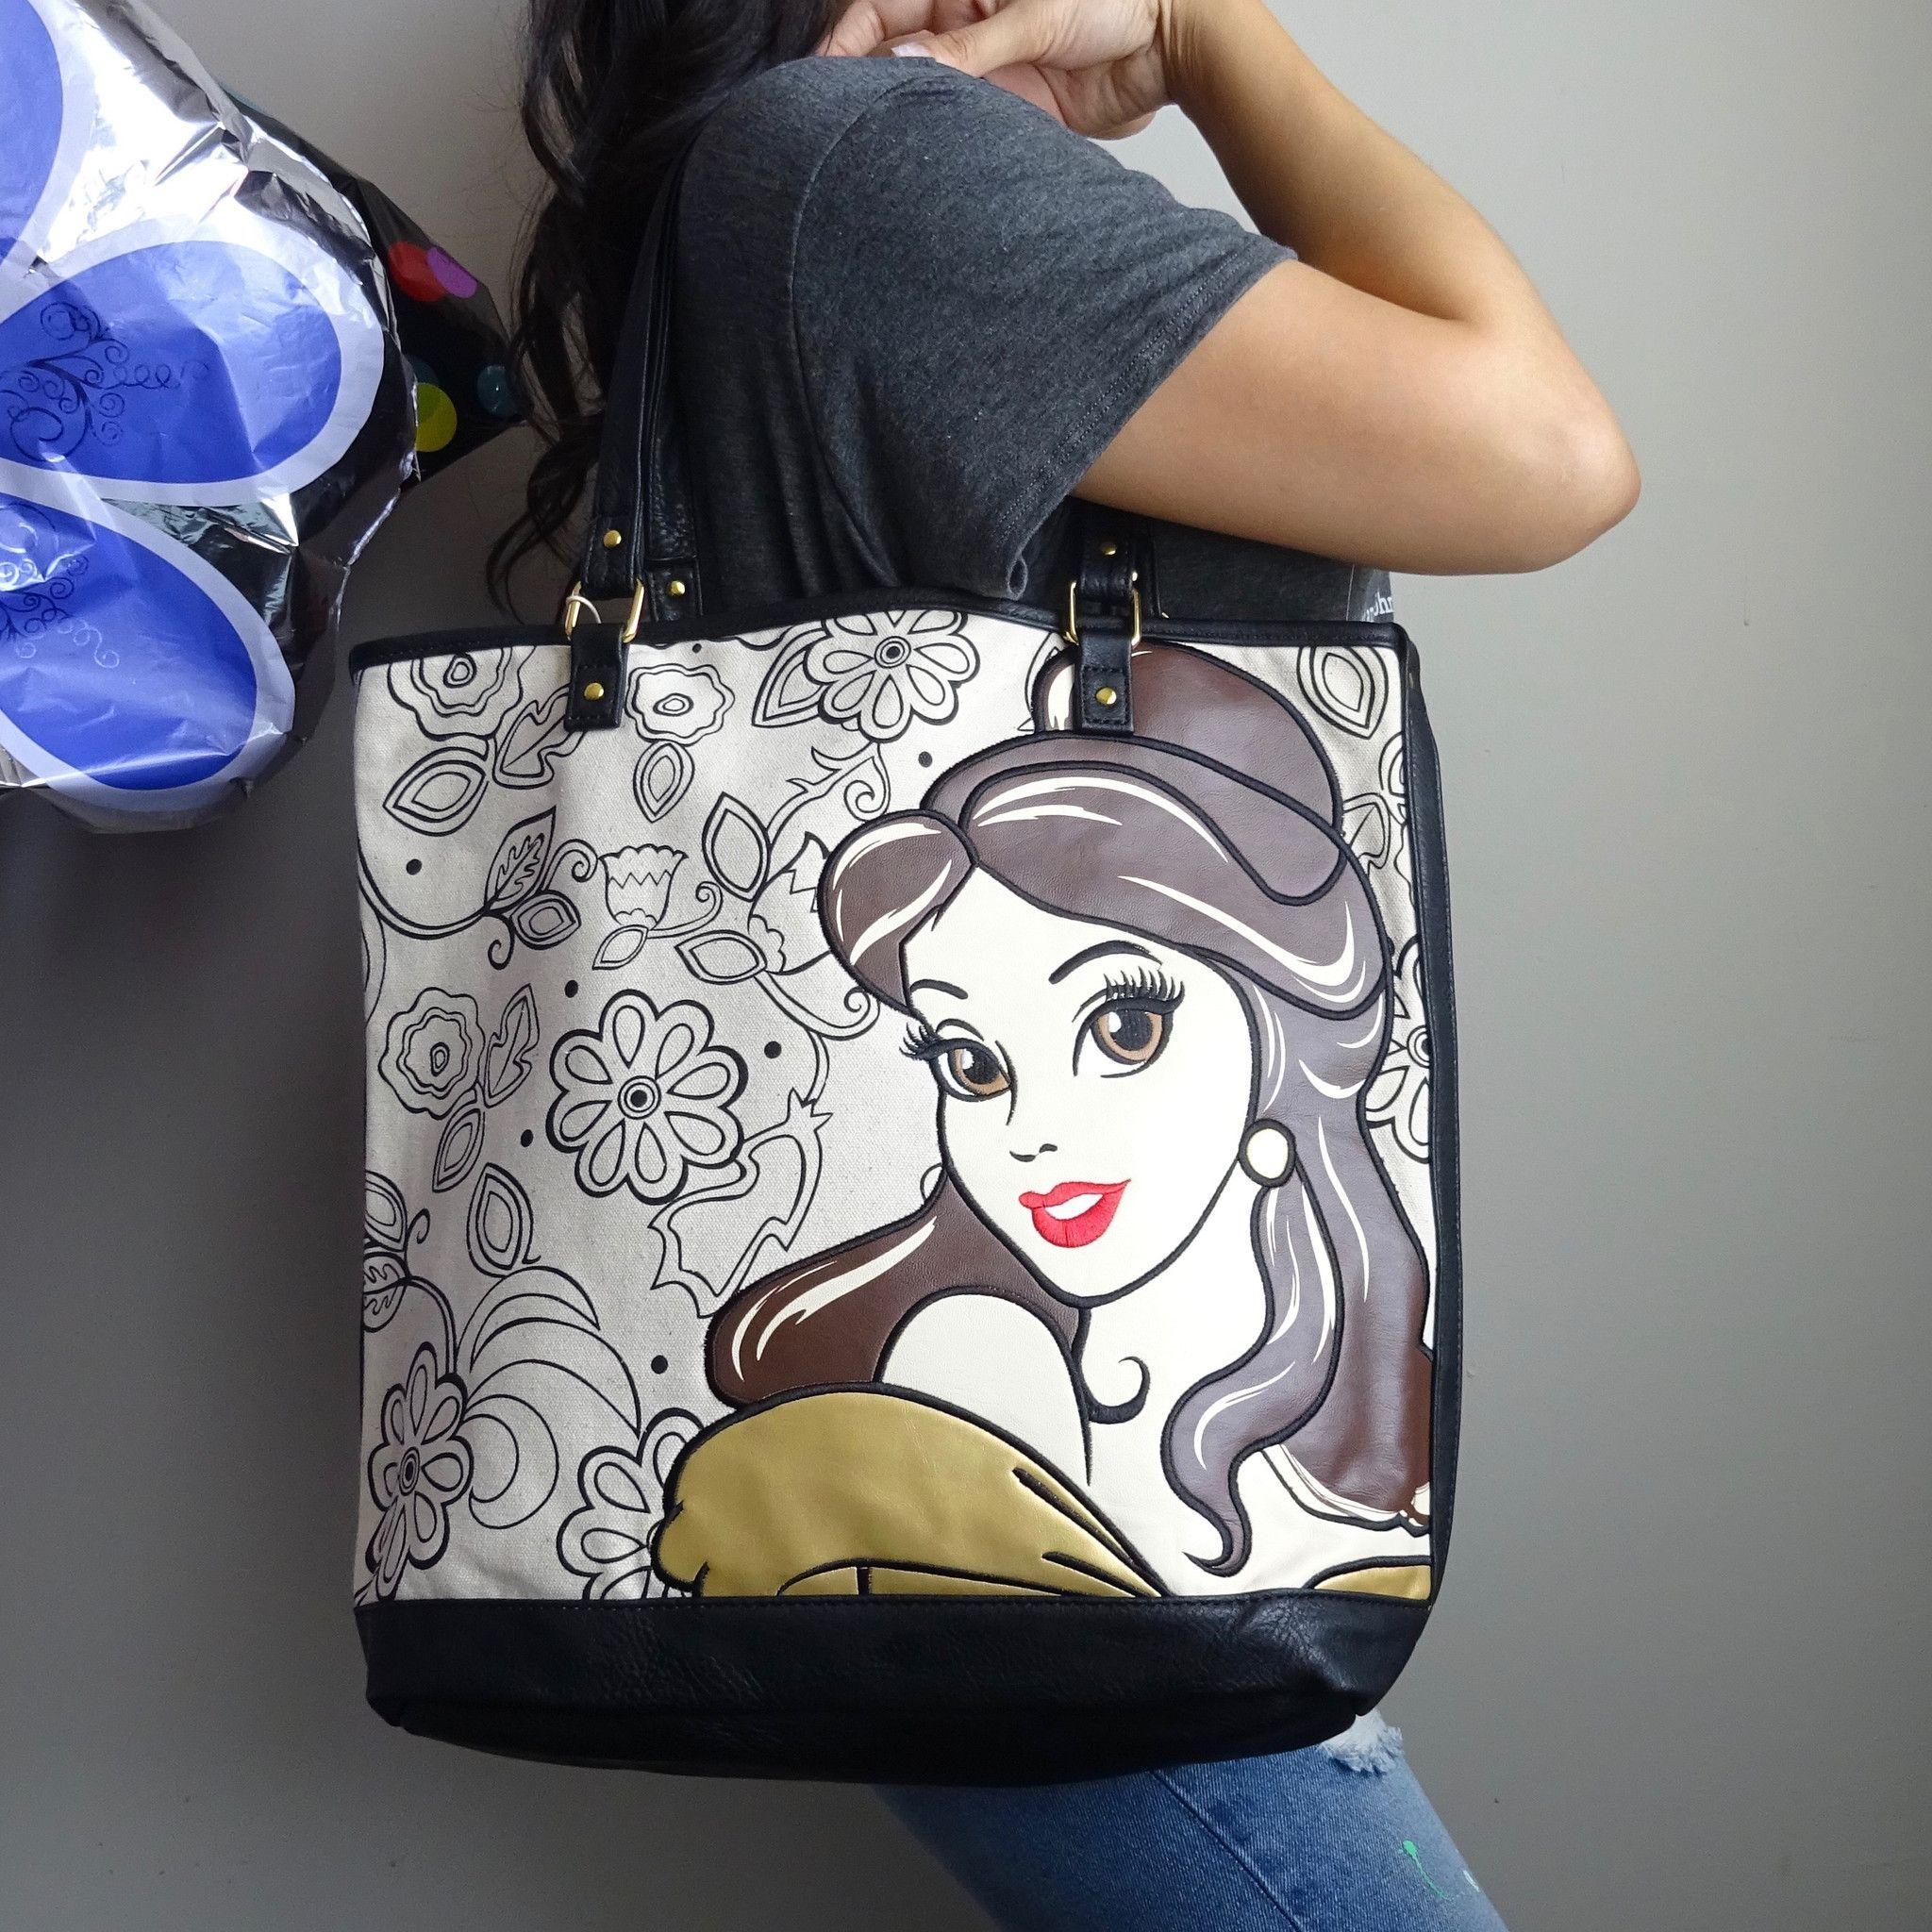 7cc44b47153 Disney's Beauty and the Beast Belle tote bag comes in natural canvas ...